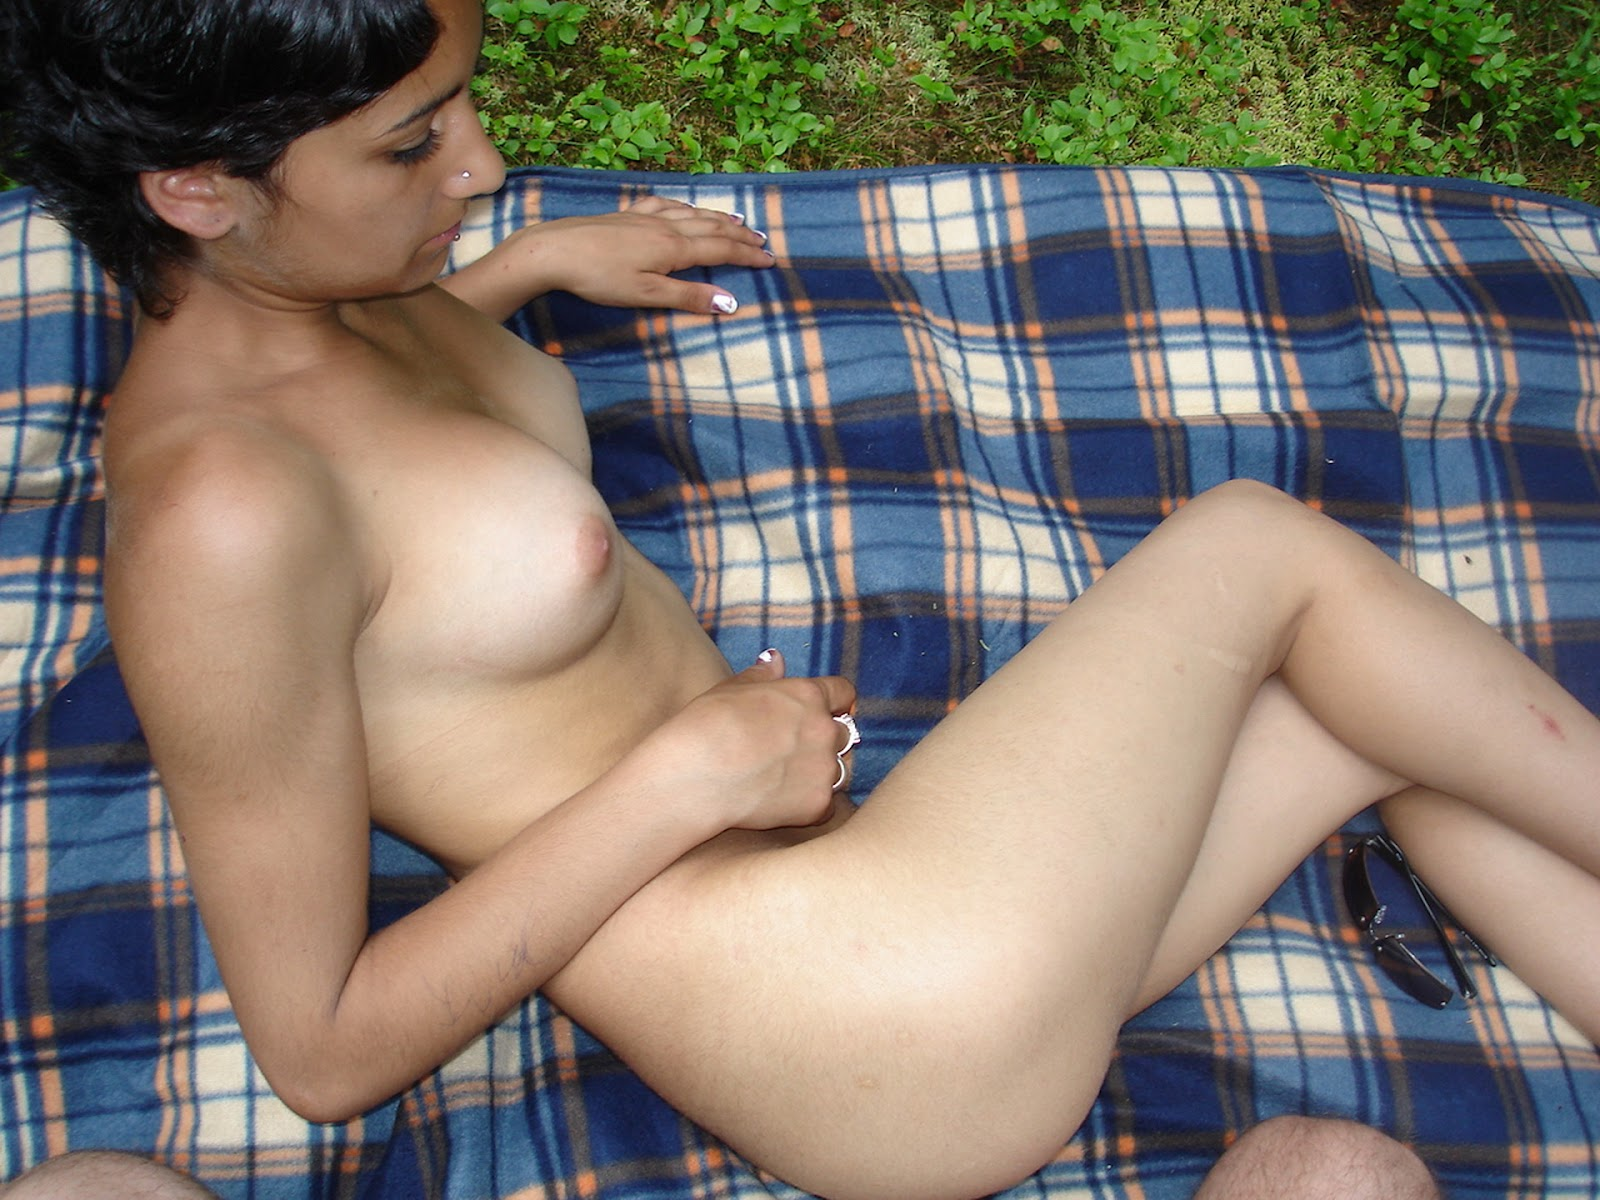 Online Real Indian Years Old Virgin Girl Having First Time Se